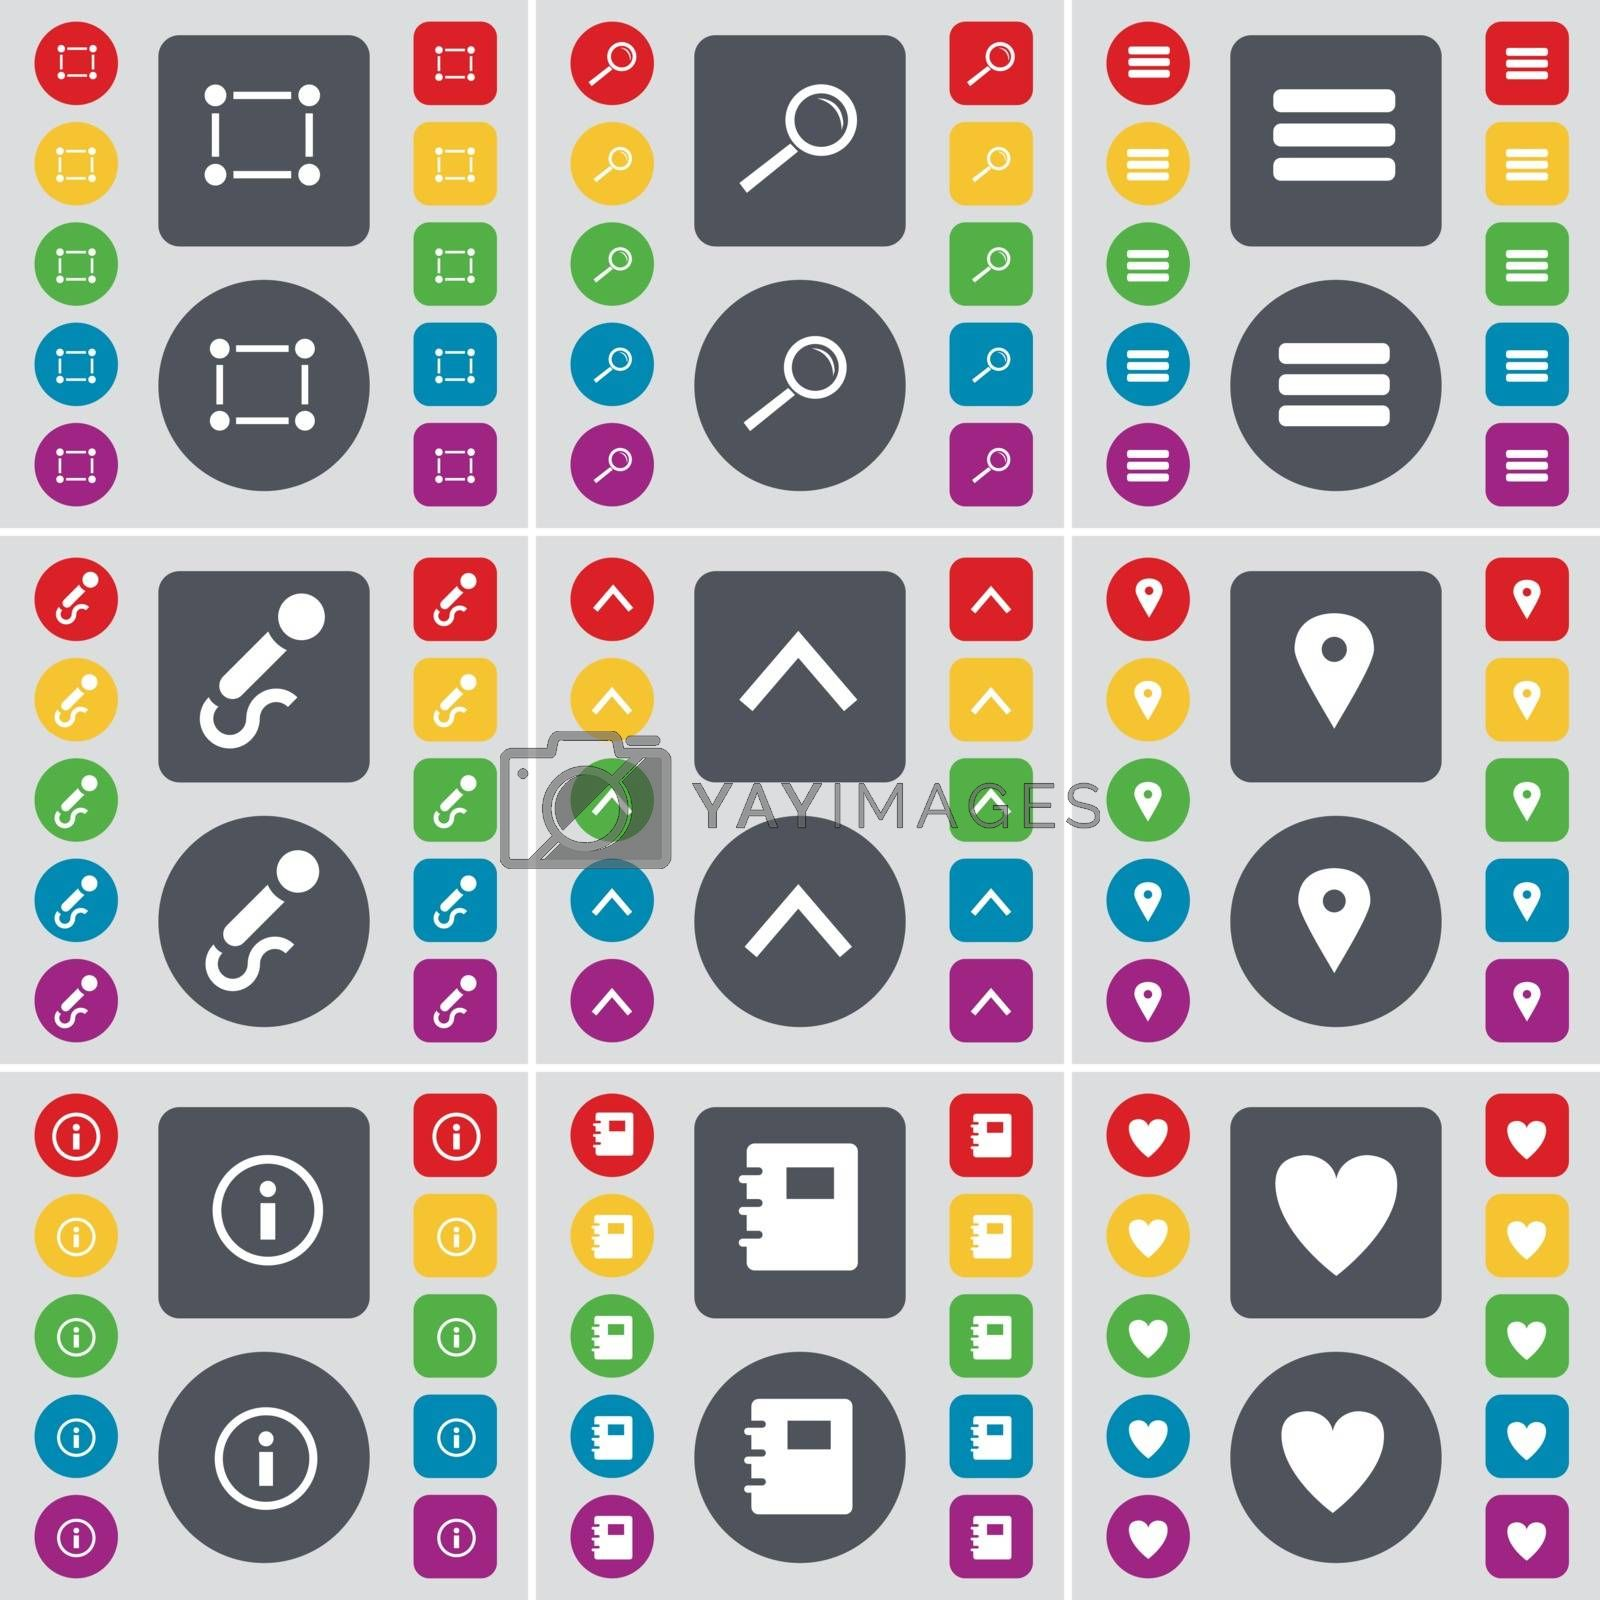 Royalty free image of Frame, Magnifying glass, Apps, Microphone, Arrow up, Checkpoint, Information, Notebook, Heart icon symbol. A large set of flat, colored buttons for your design. Vector by serhii_lohvyniuk